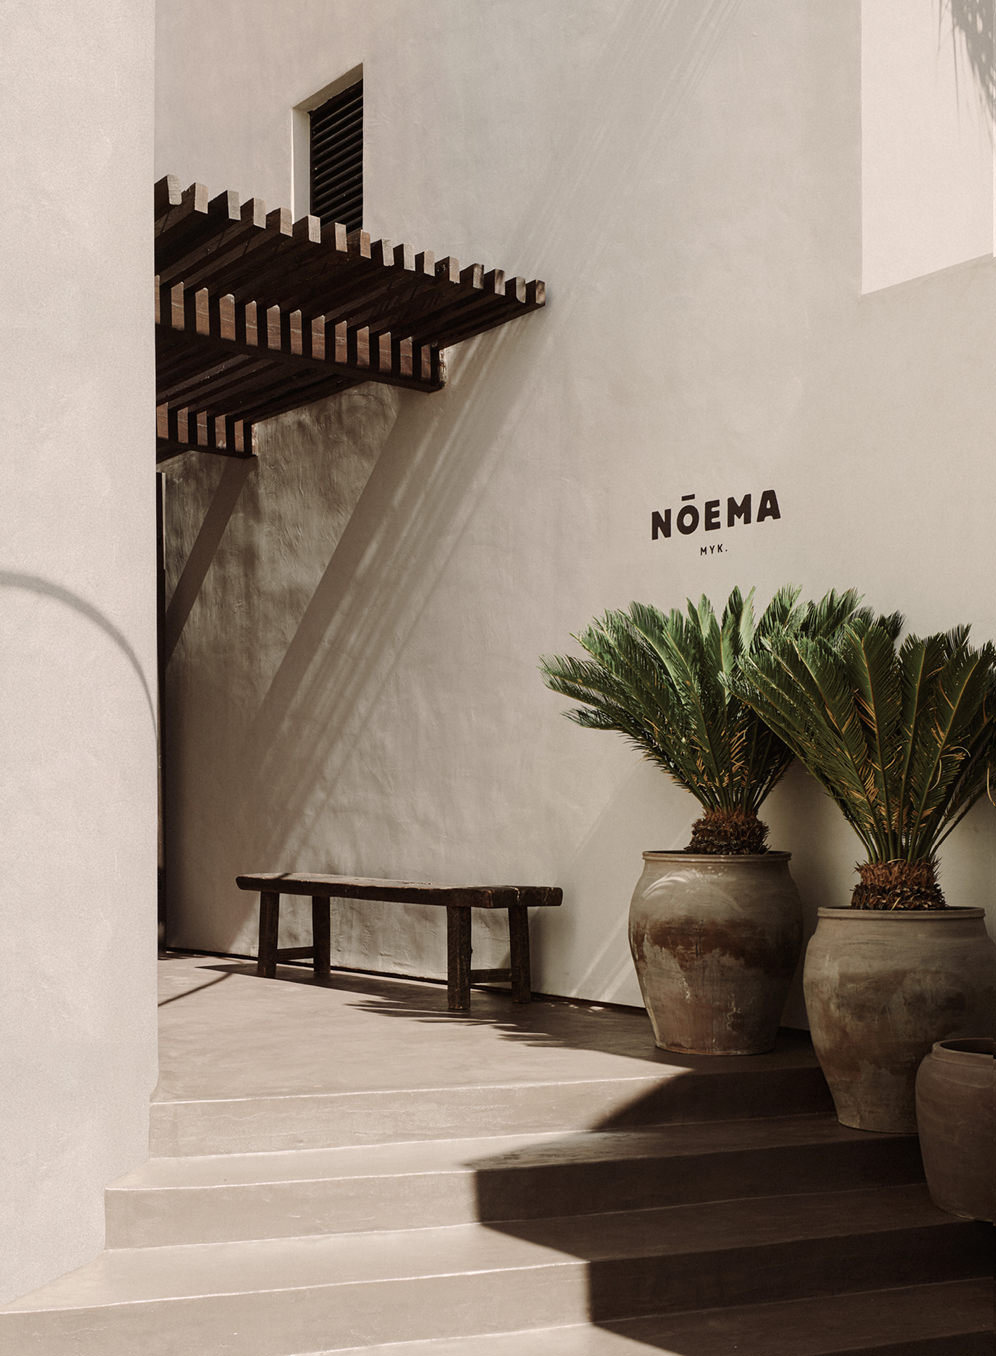 Noema Restaurant & Bar Mykonos designed by Lambs and Lions Berlin, Architecture